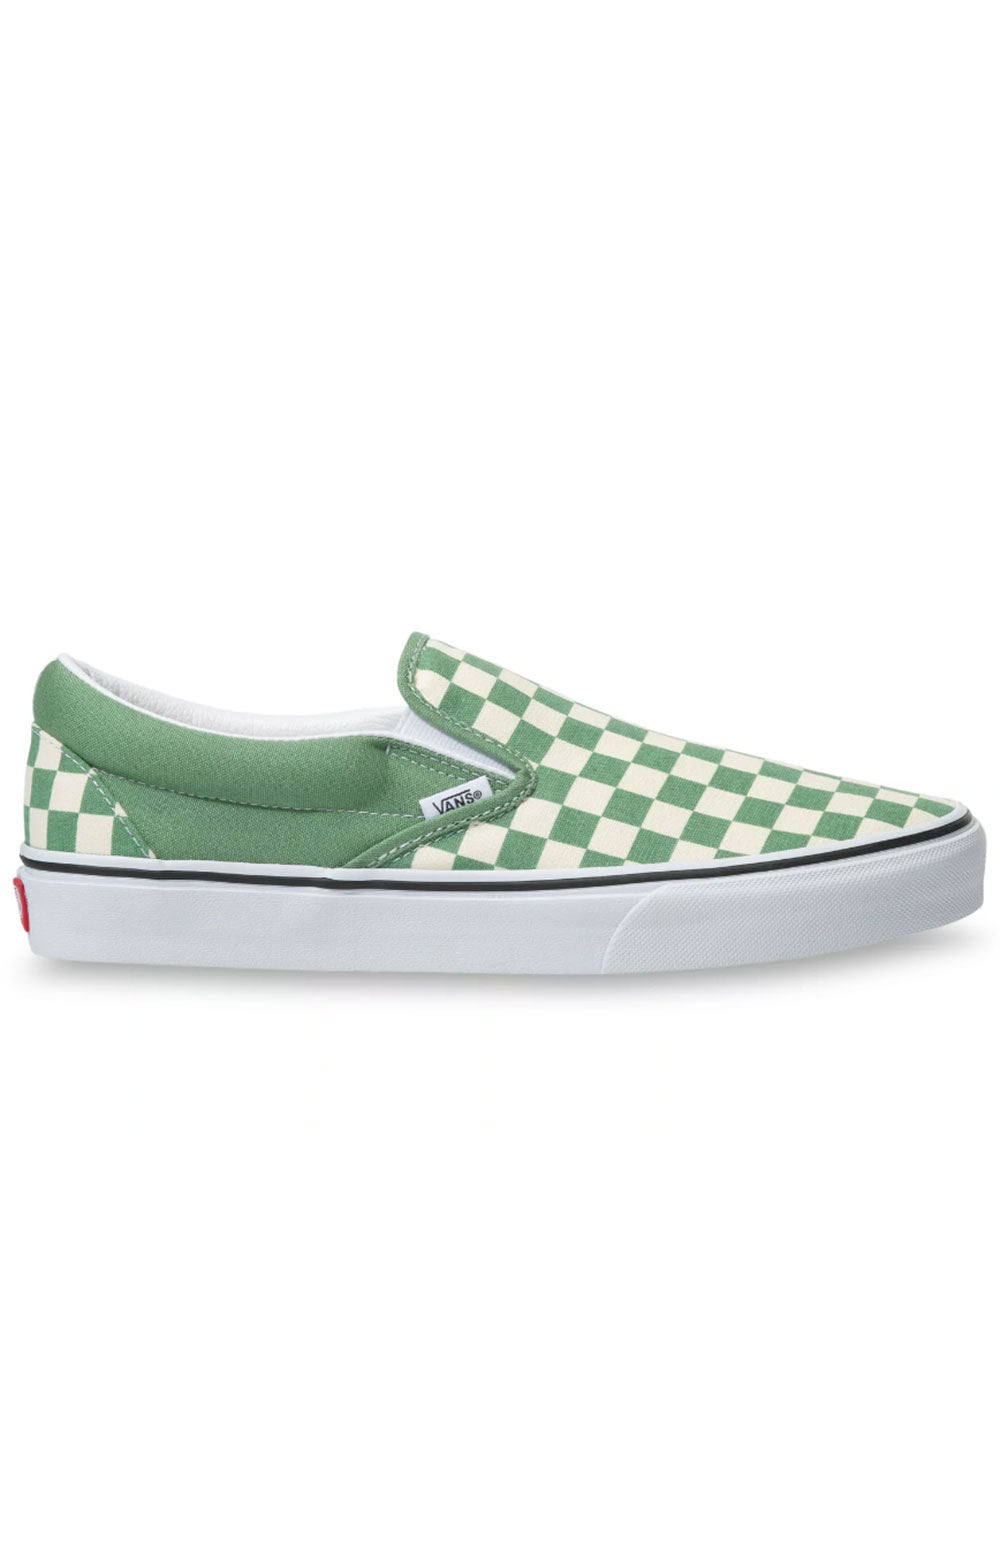 (3TB43B) Checkerboard Classic Slip-On Shoes - Shale